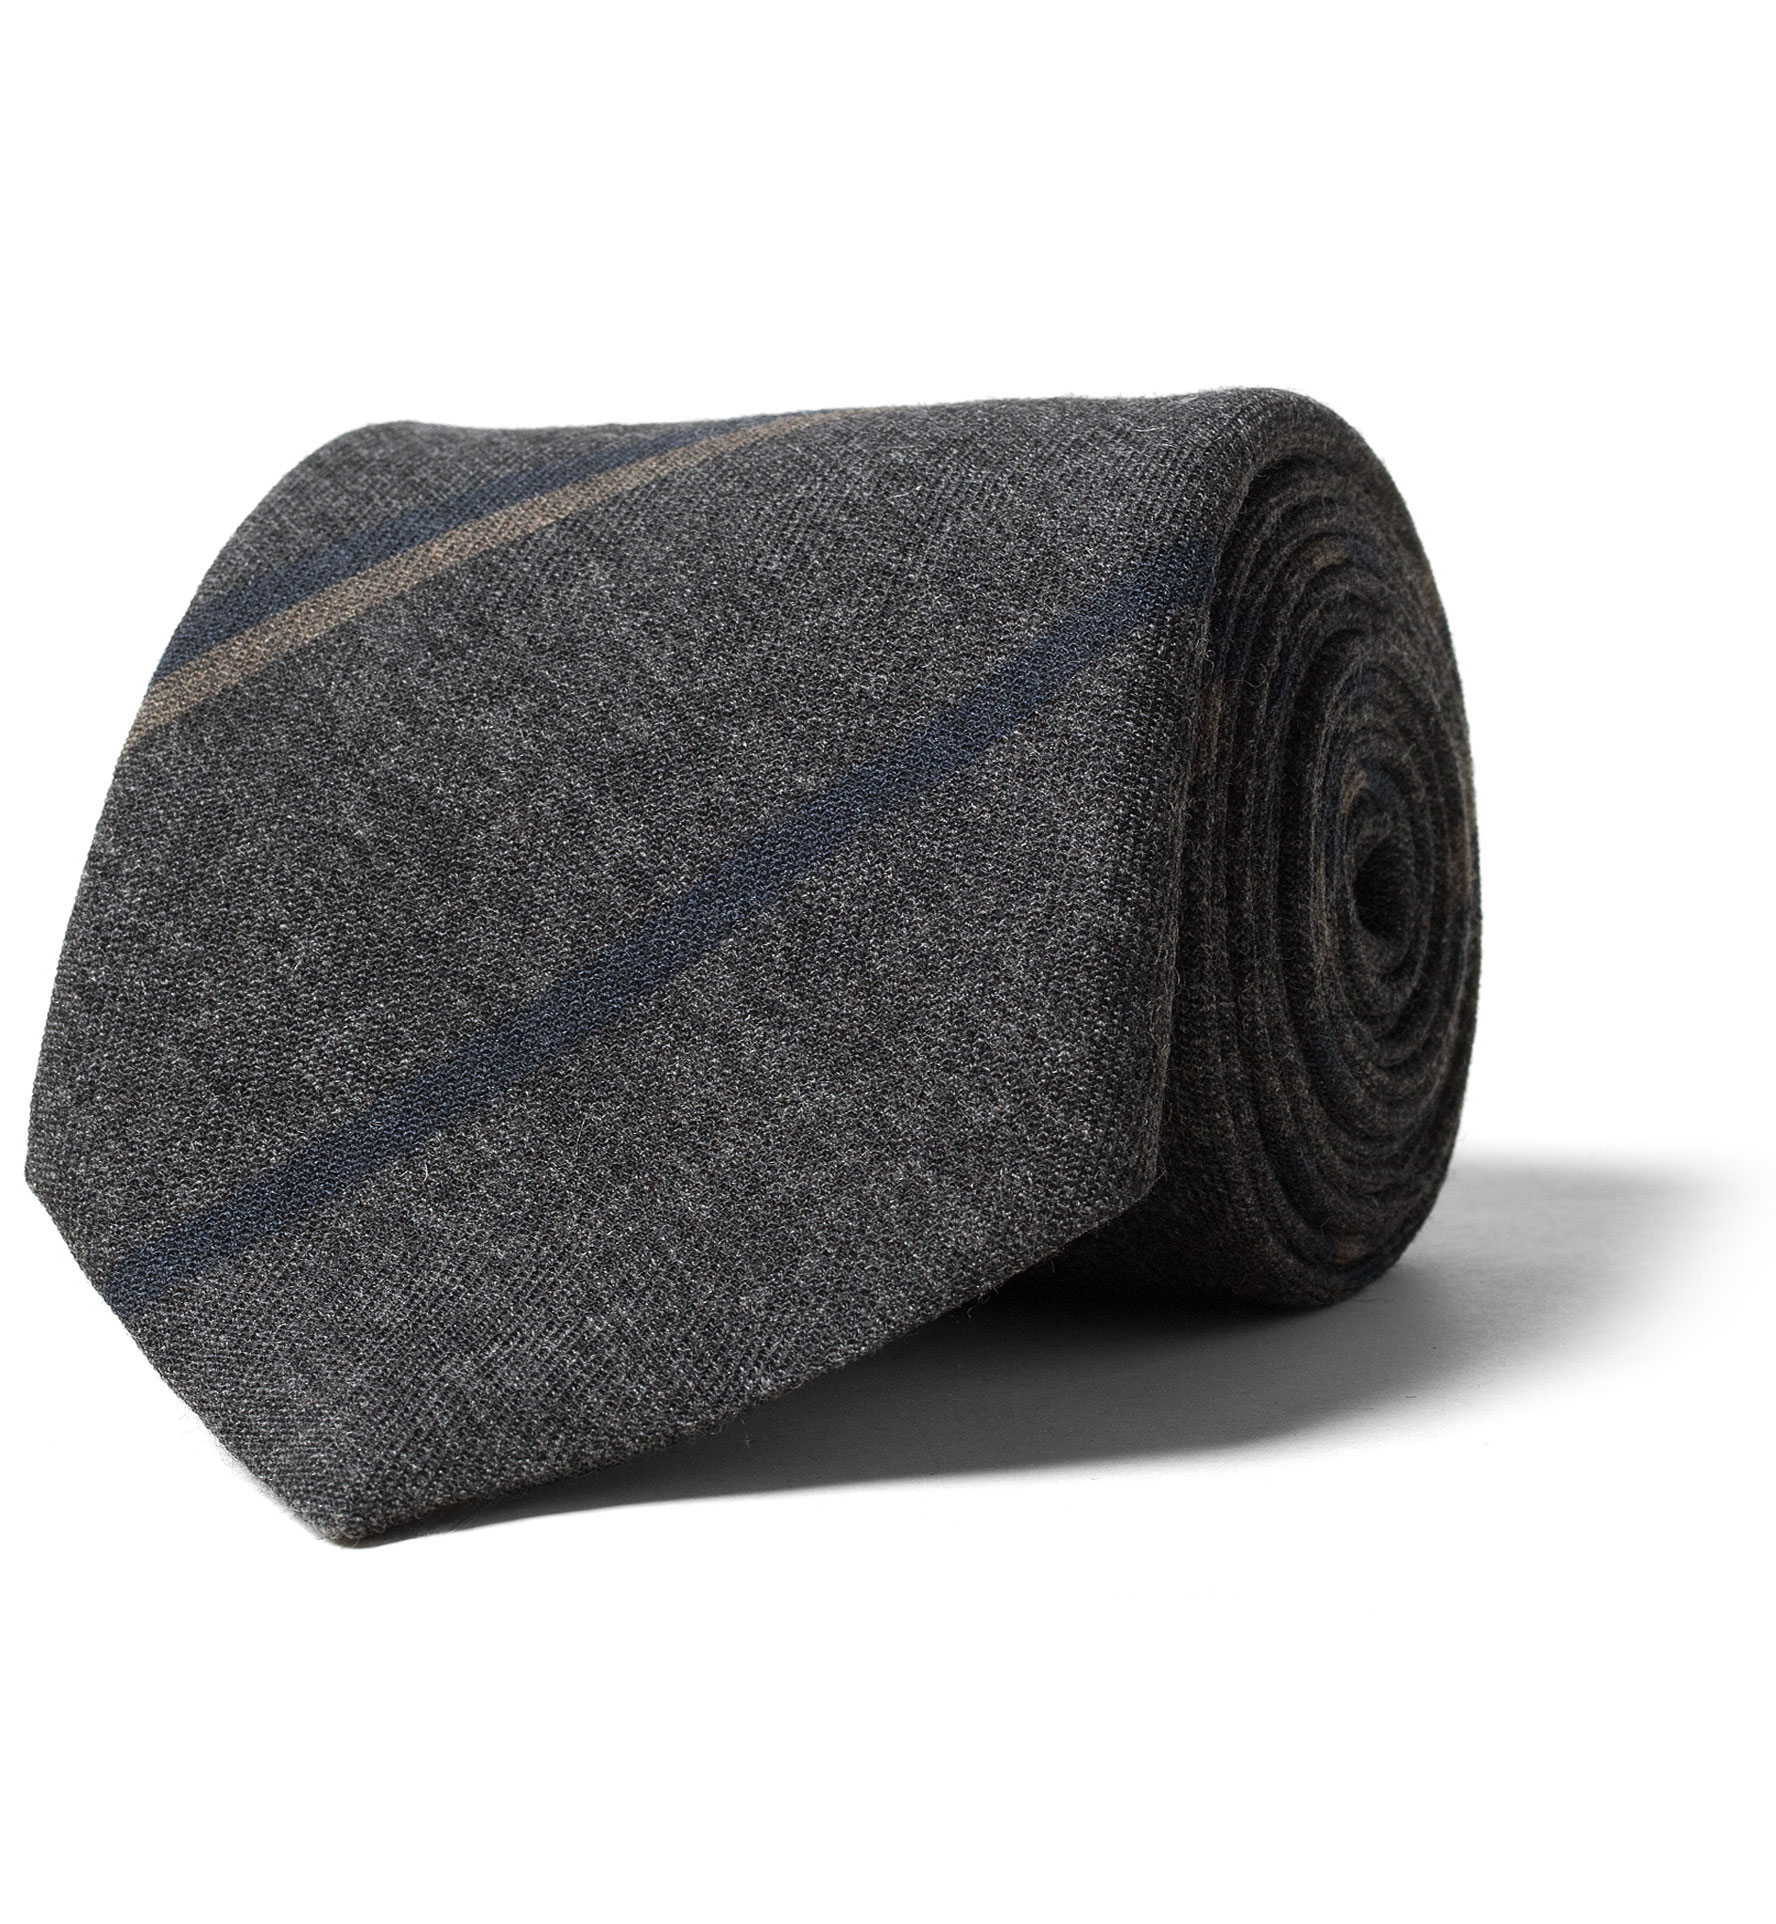 Zoom Image of Grey and Navy Striped Wool Tie